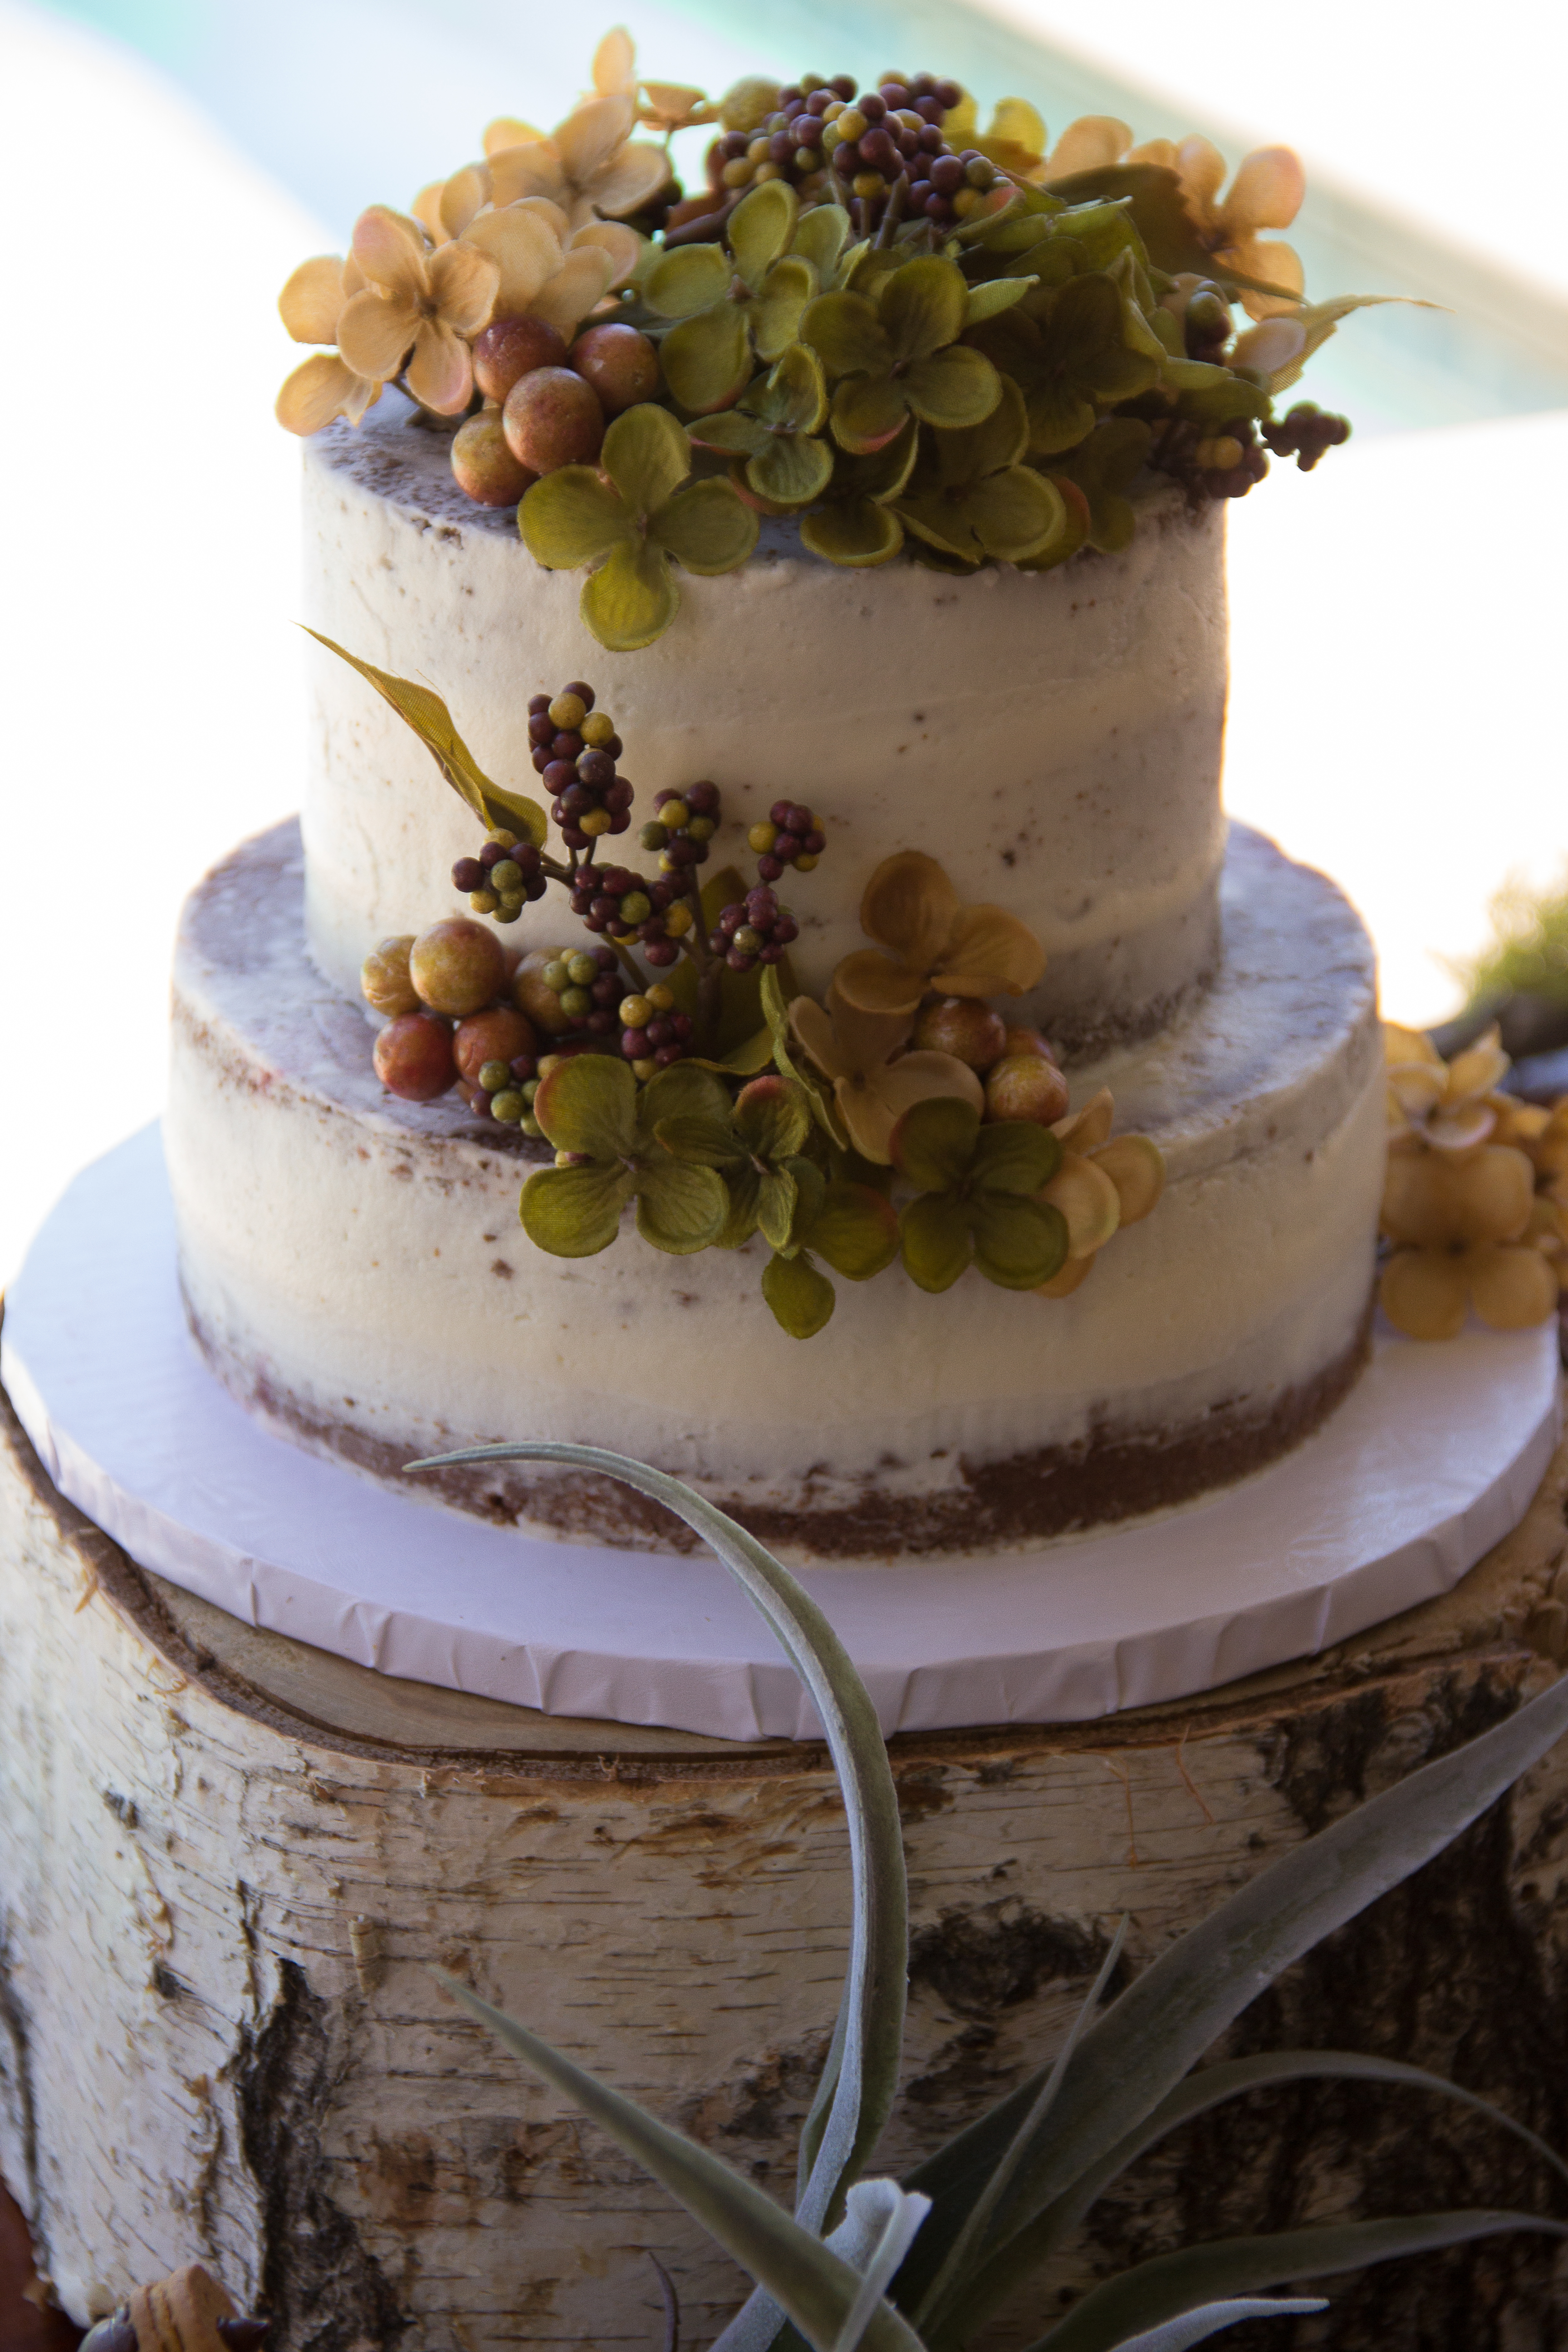 Naked Cake with Floral decor at Woodland Baby Showe